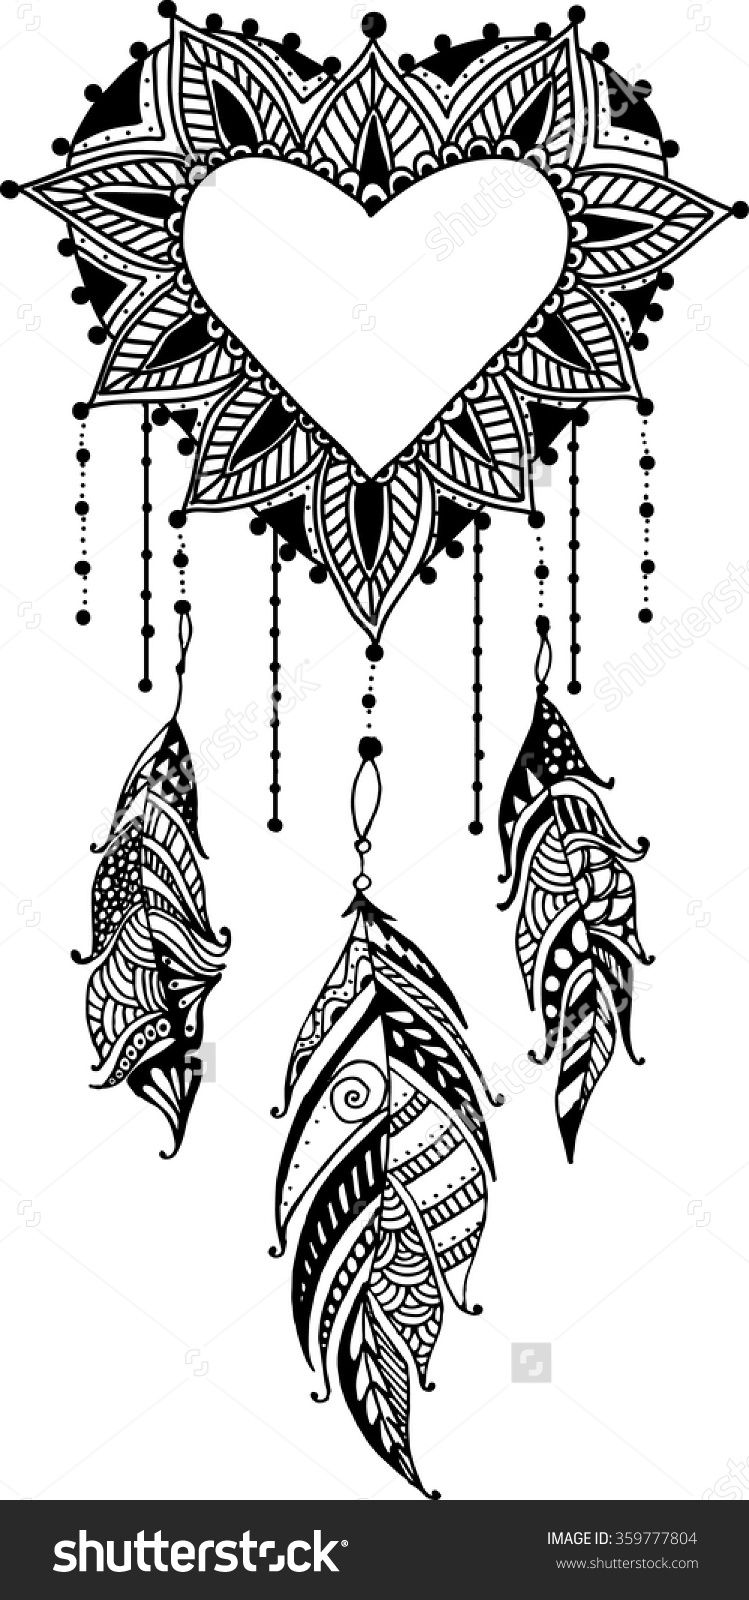 heart dream catcher coloring pages pin von anne bölter auf ausmalbilder ausmalbilder pages dream coloring heart catcher